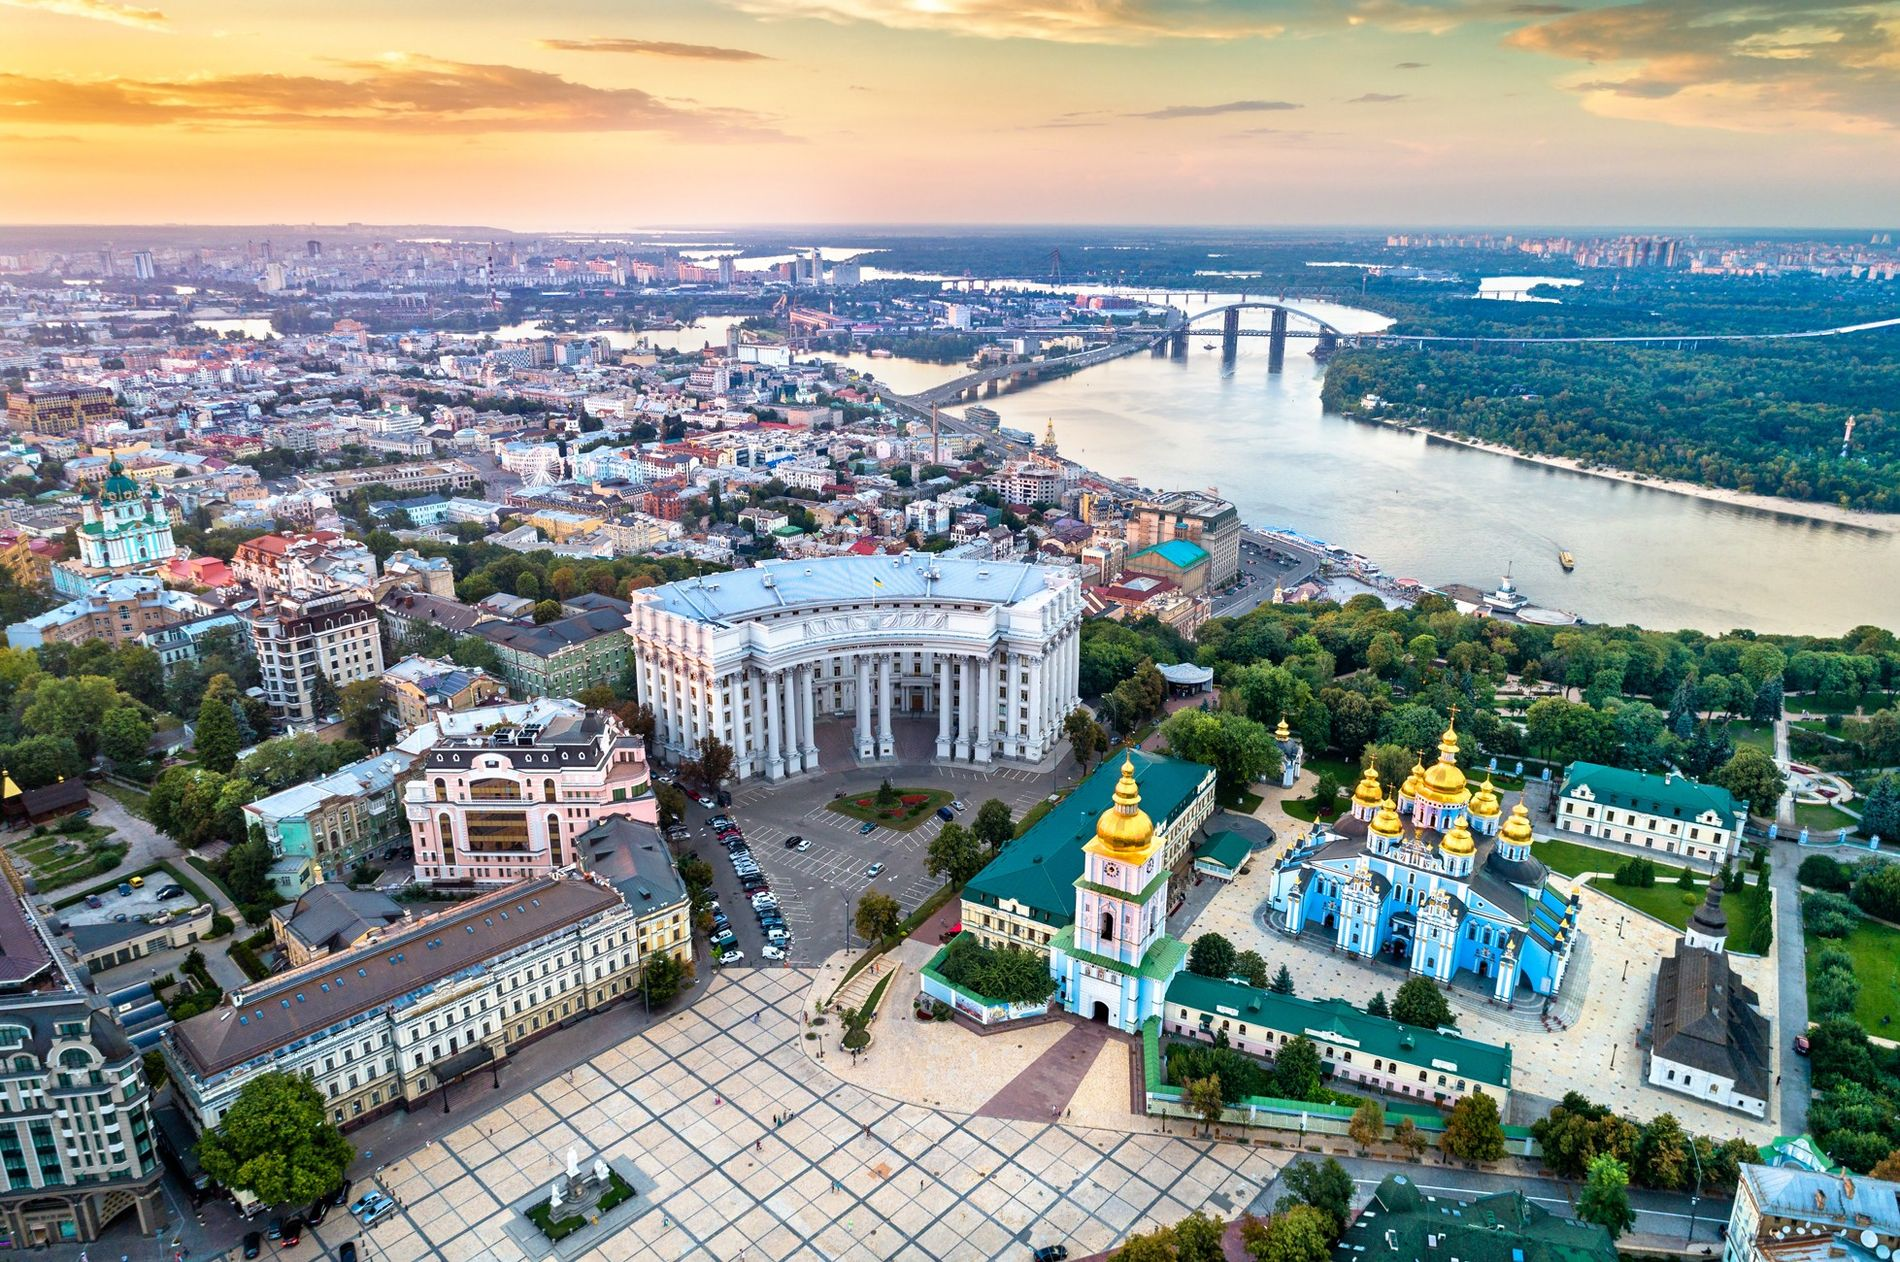 Kyiv, Ukraine, holds golden-domed churches and the meandering Dnieper River.